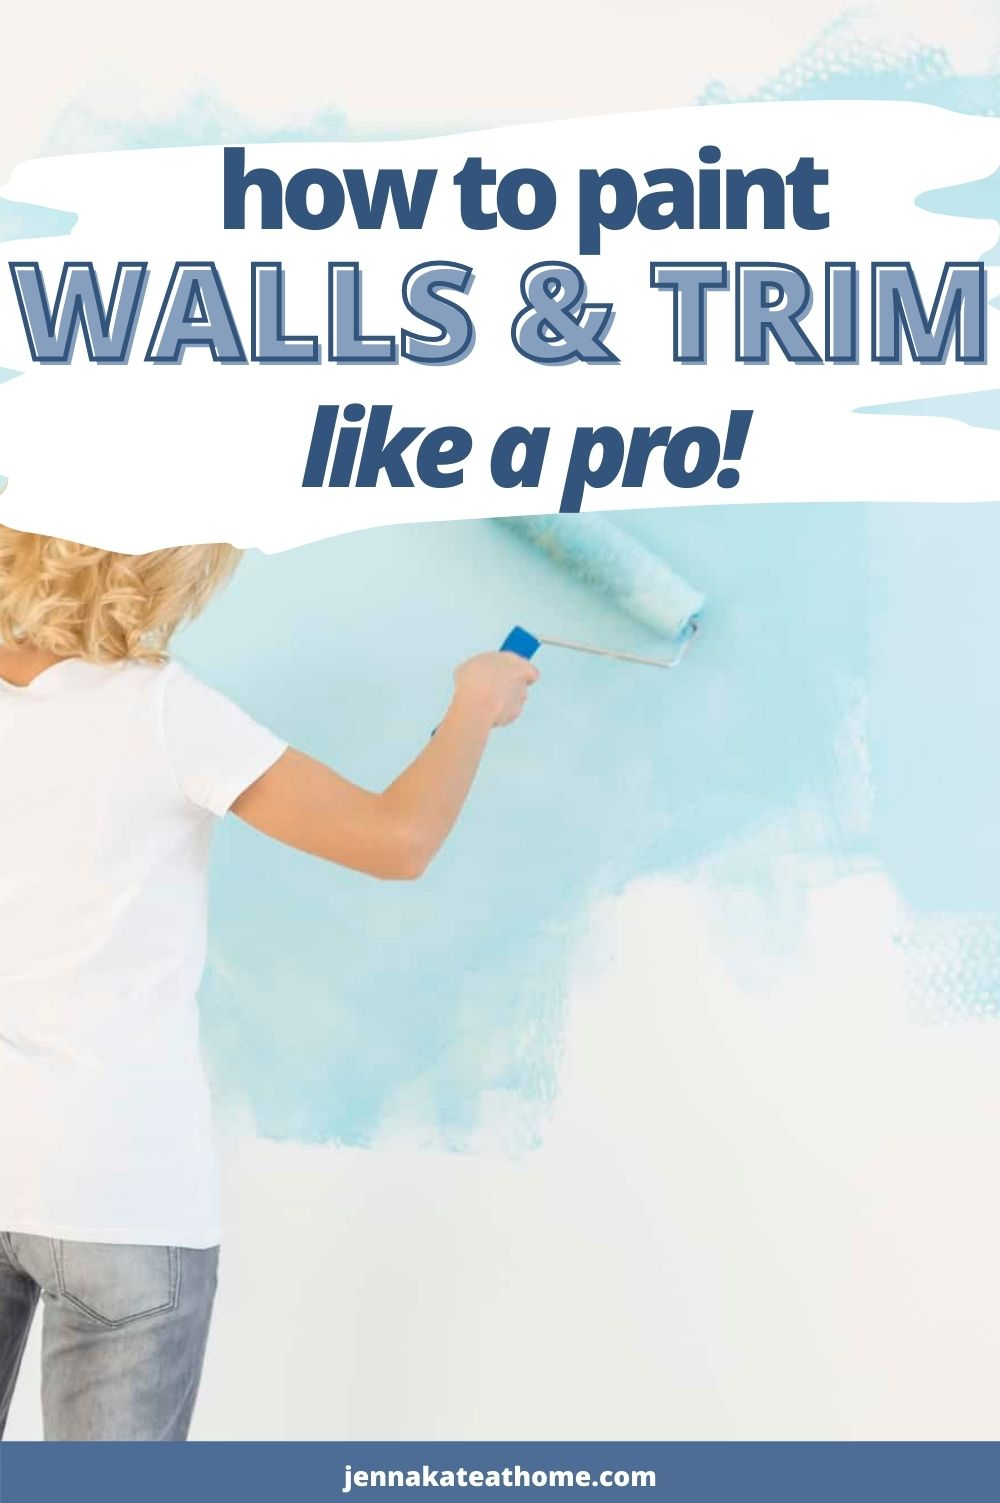 how to paint walls and trim pin image